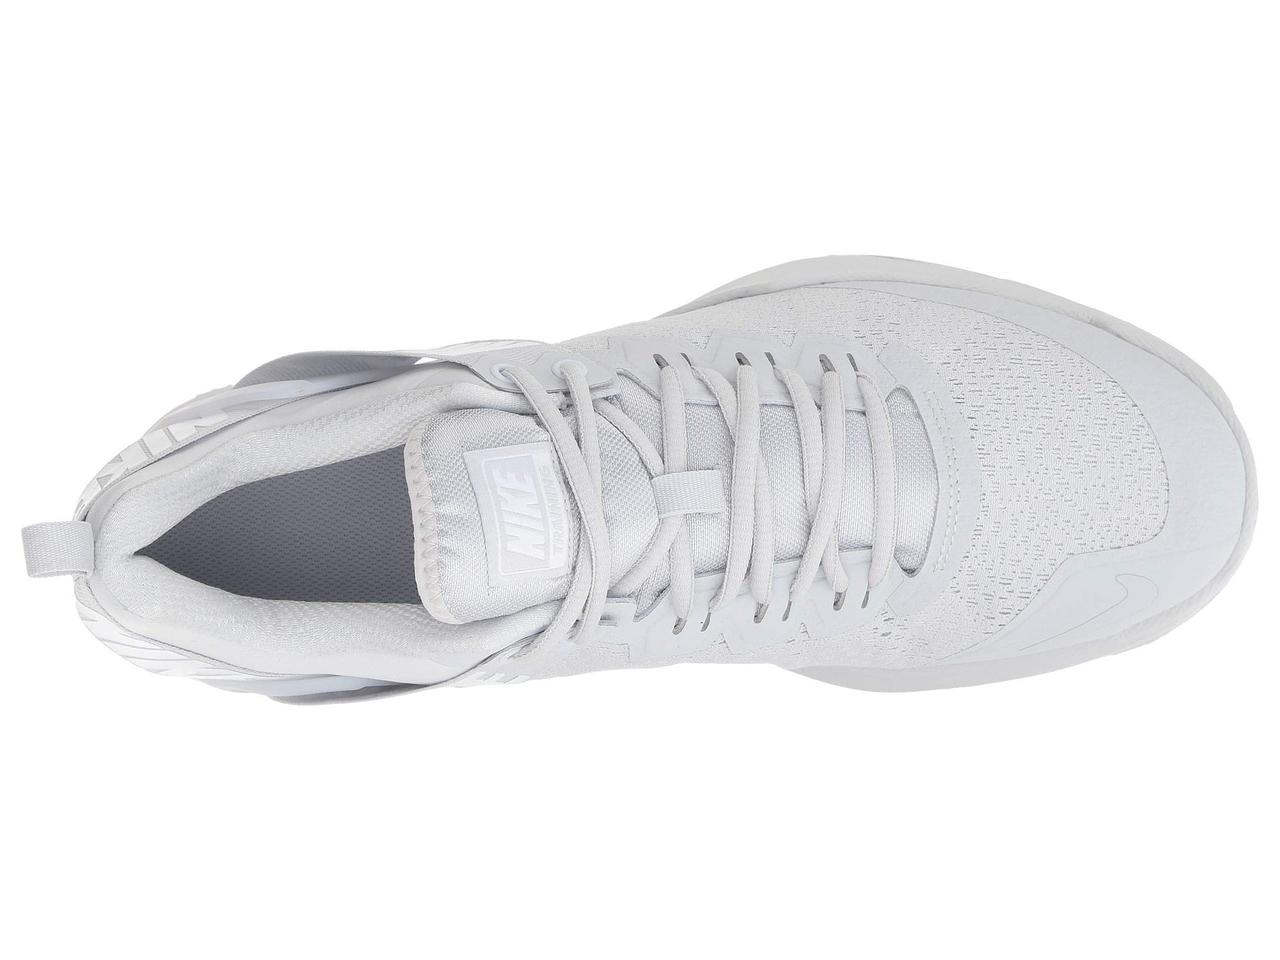 79af878ae62d ... Кроссовки Кеды (Оригинал) Nike Zoom Domination TR 2 Pure Platinum White